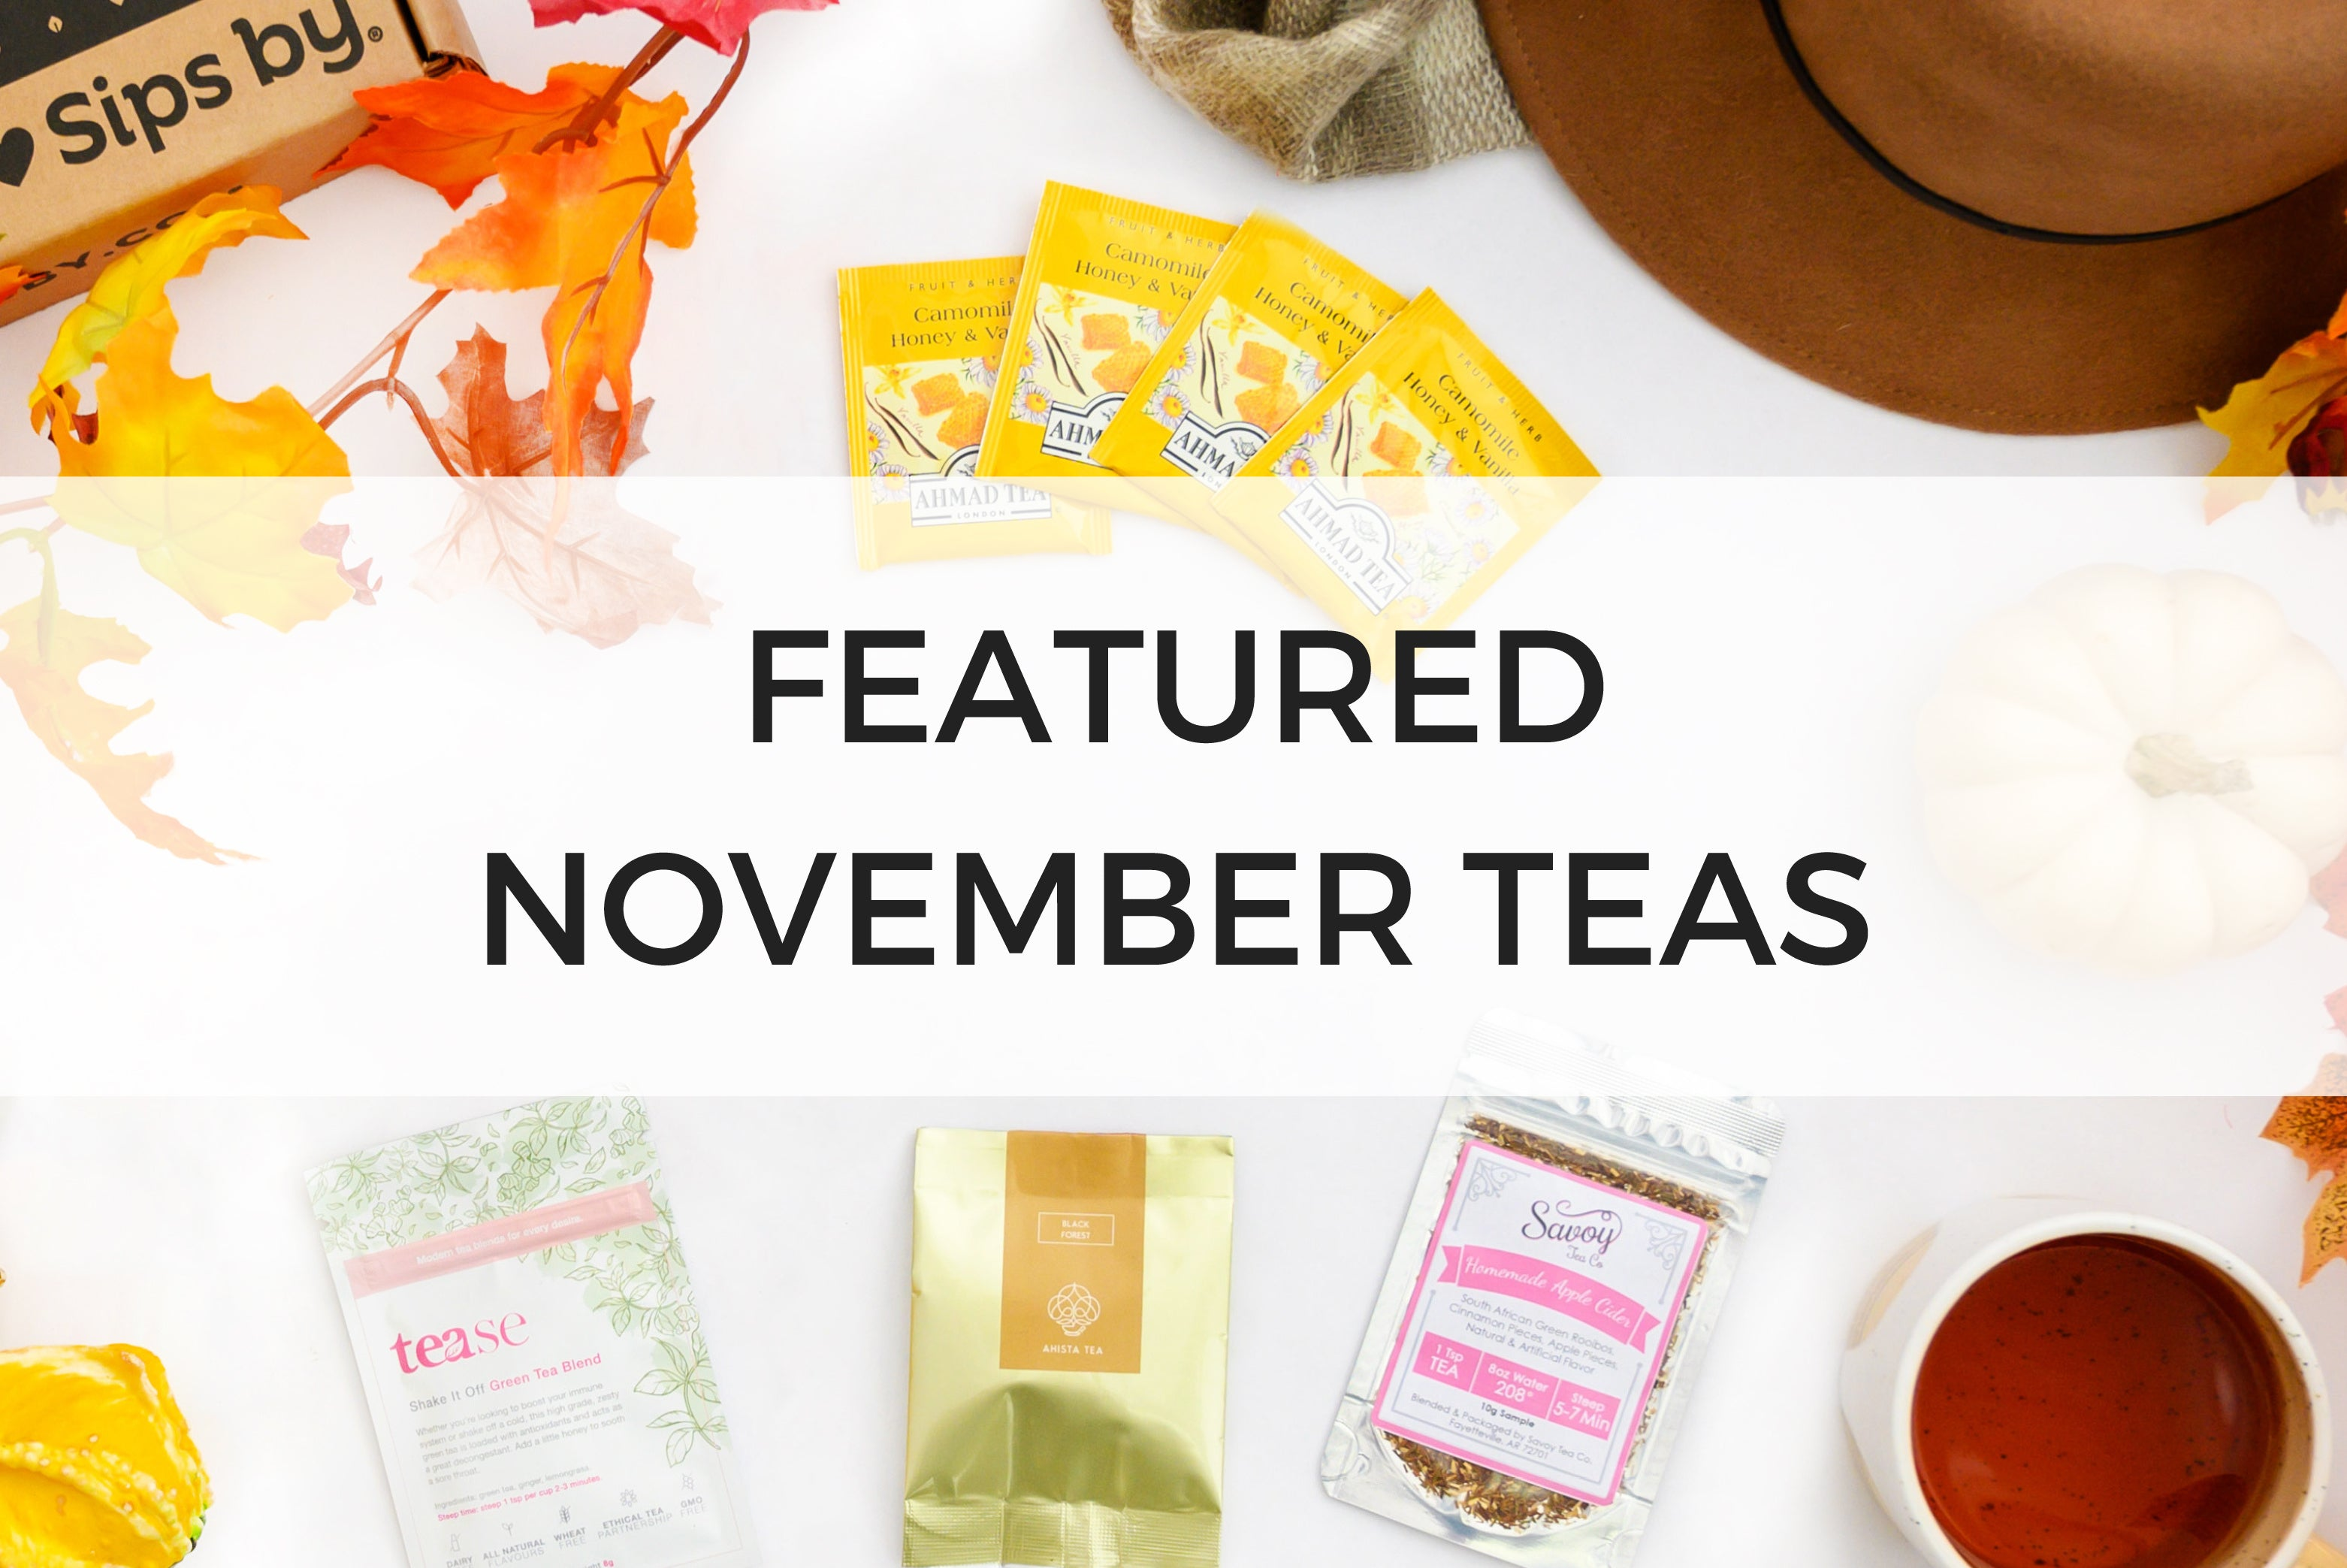 November Featured Teas